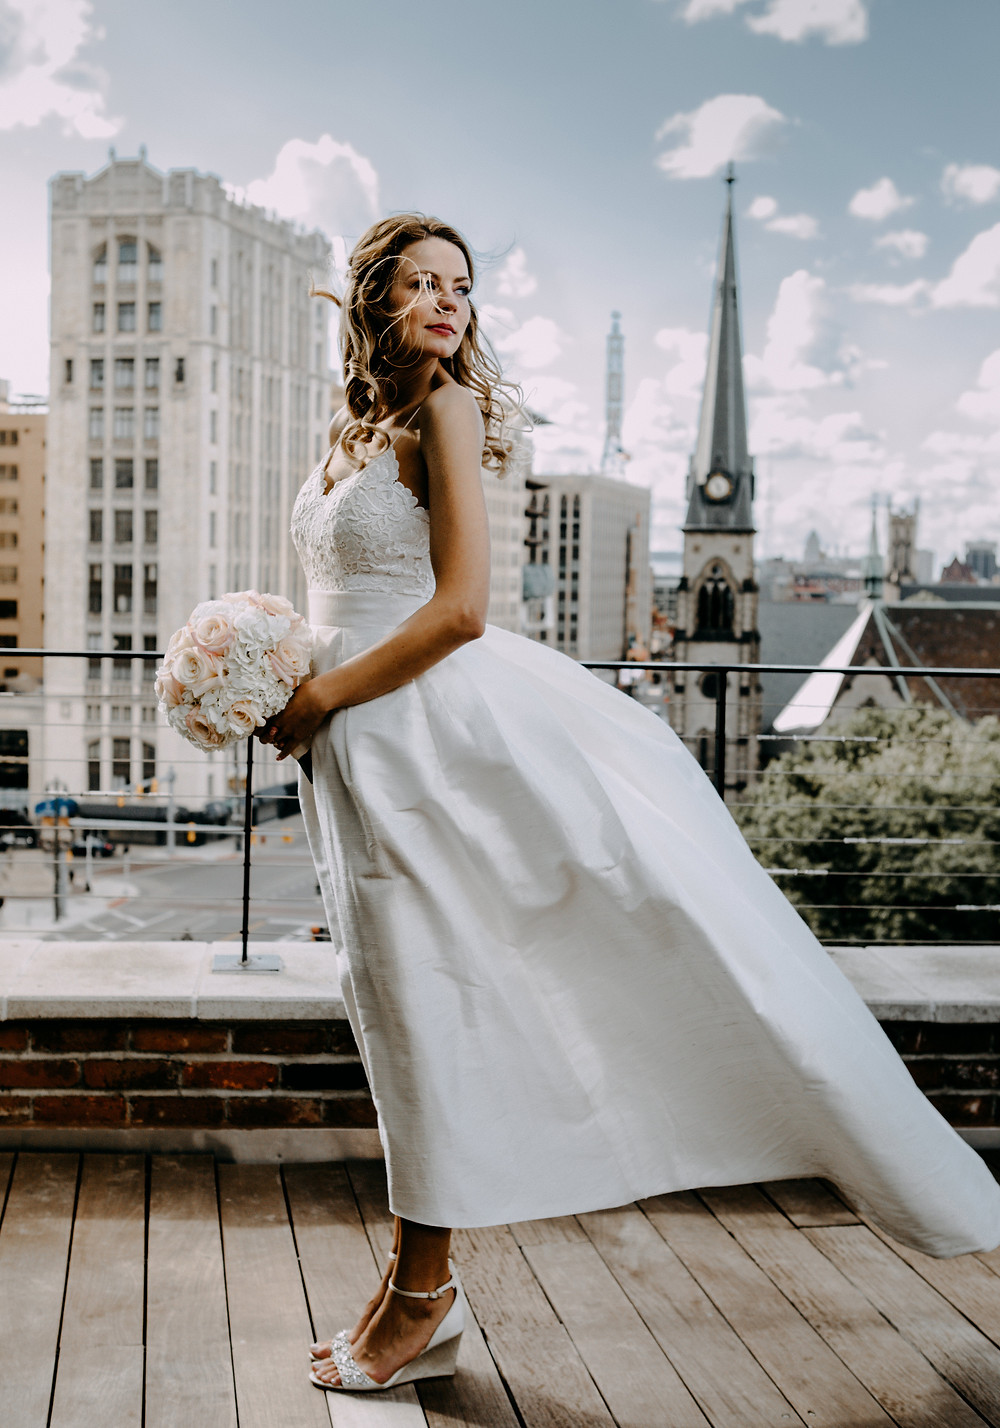 wedding photo at the madison loft in downtown detroit. photo taken by little blue bird photography.